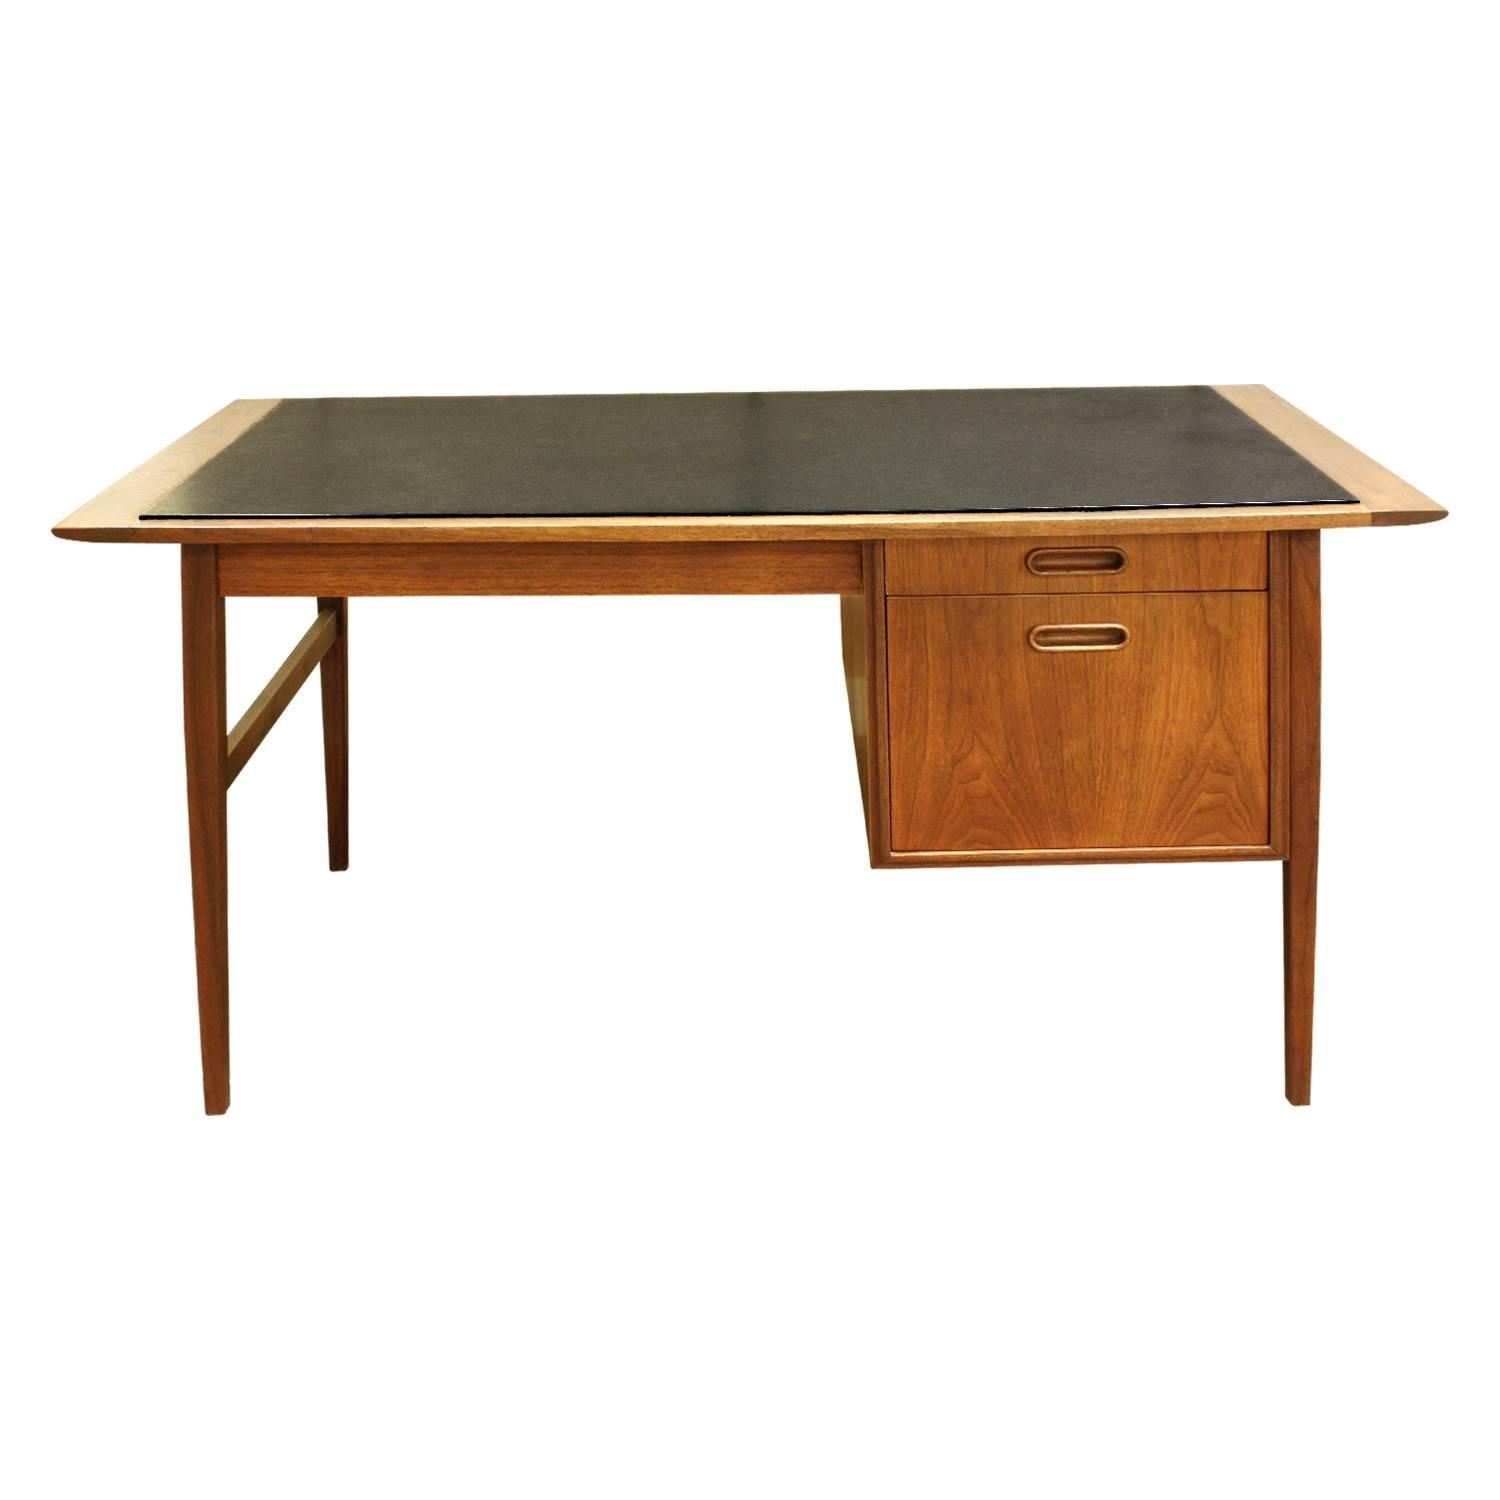 modern teak galaxiemodern table top flip products peter lovig nielsen scandinavian danish writing denmark wegner midcentury desk